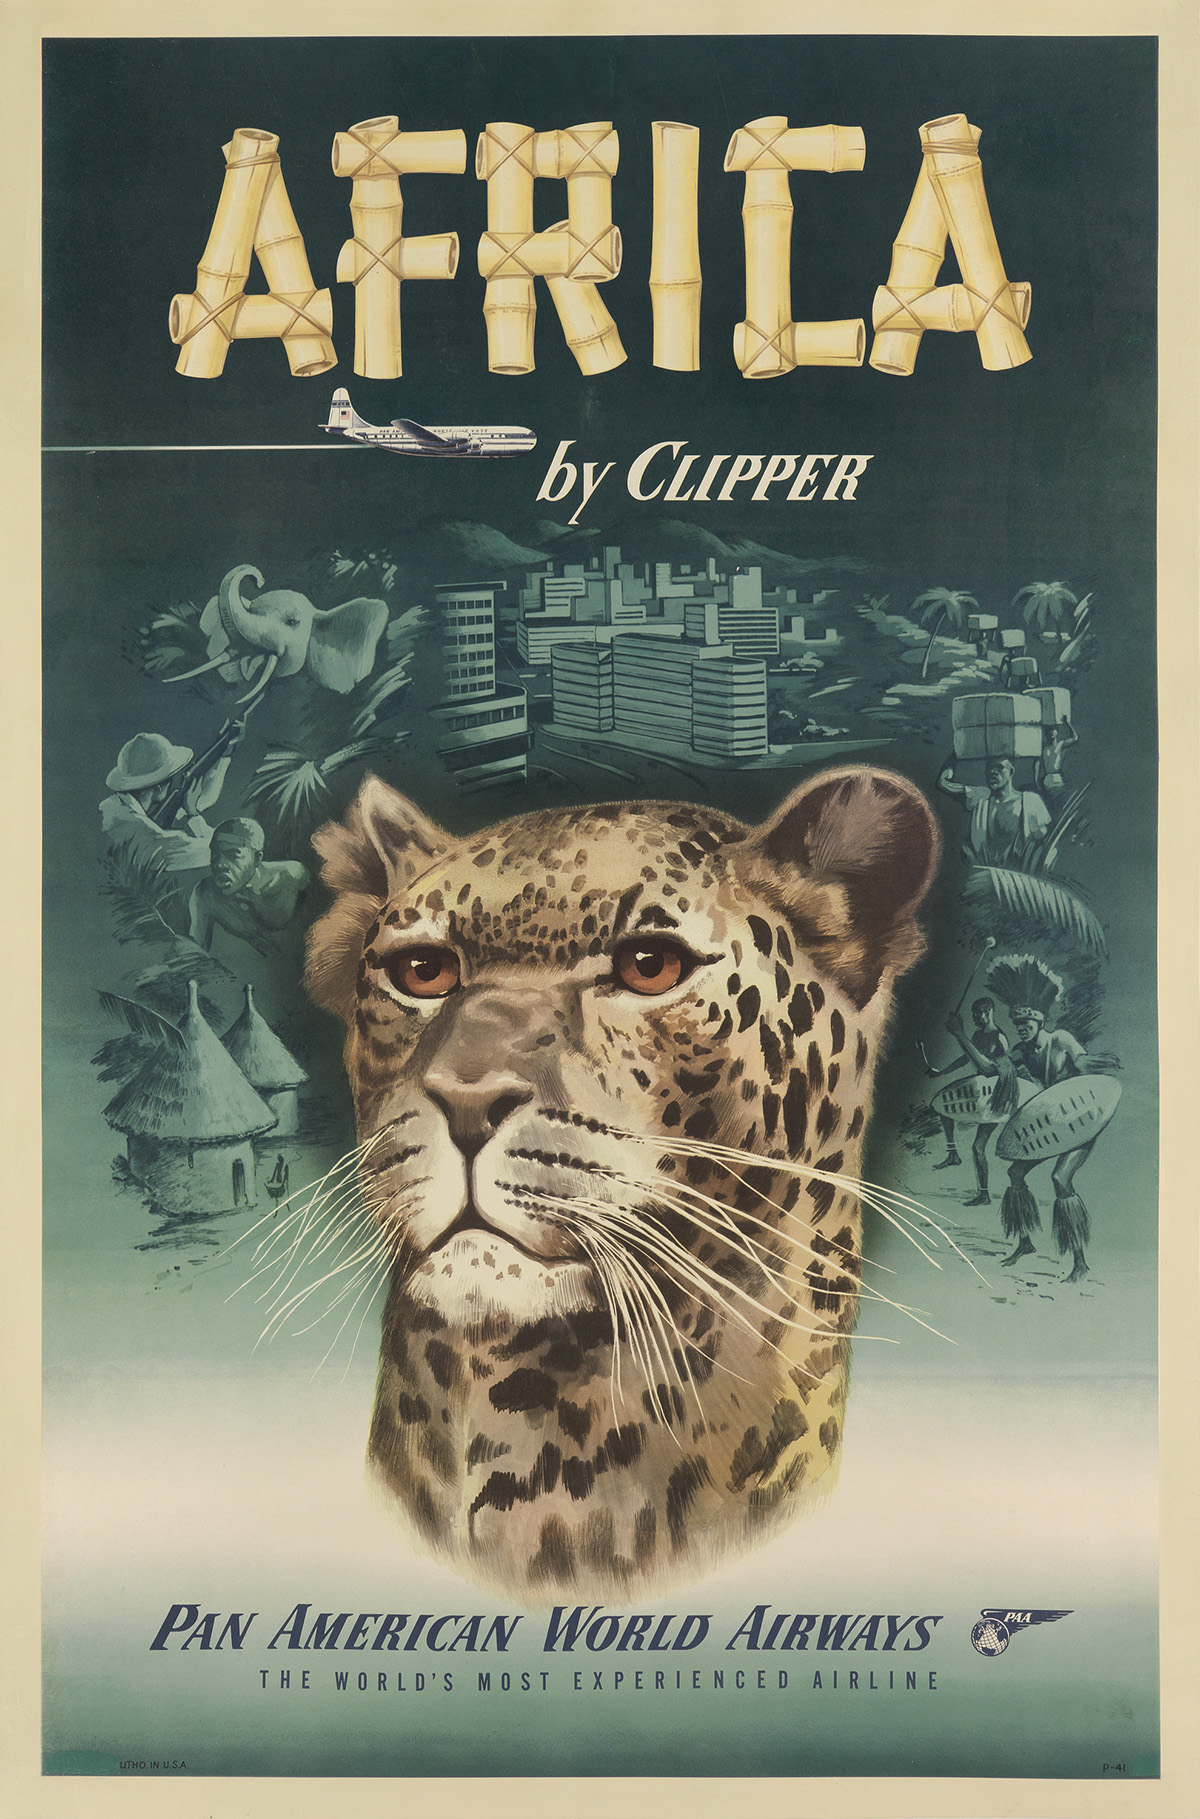 DESIGNER-UNKNOWN-AFRICA-BY-CLIPPER--PAN-AMERICAN-WORLD-AIRWA